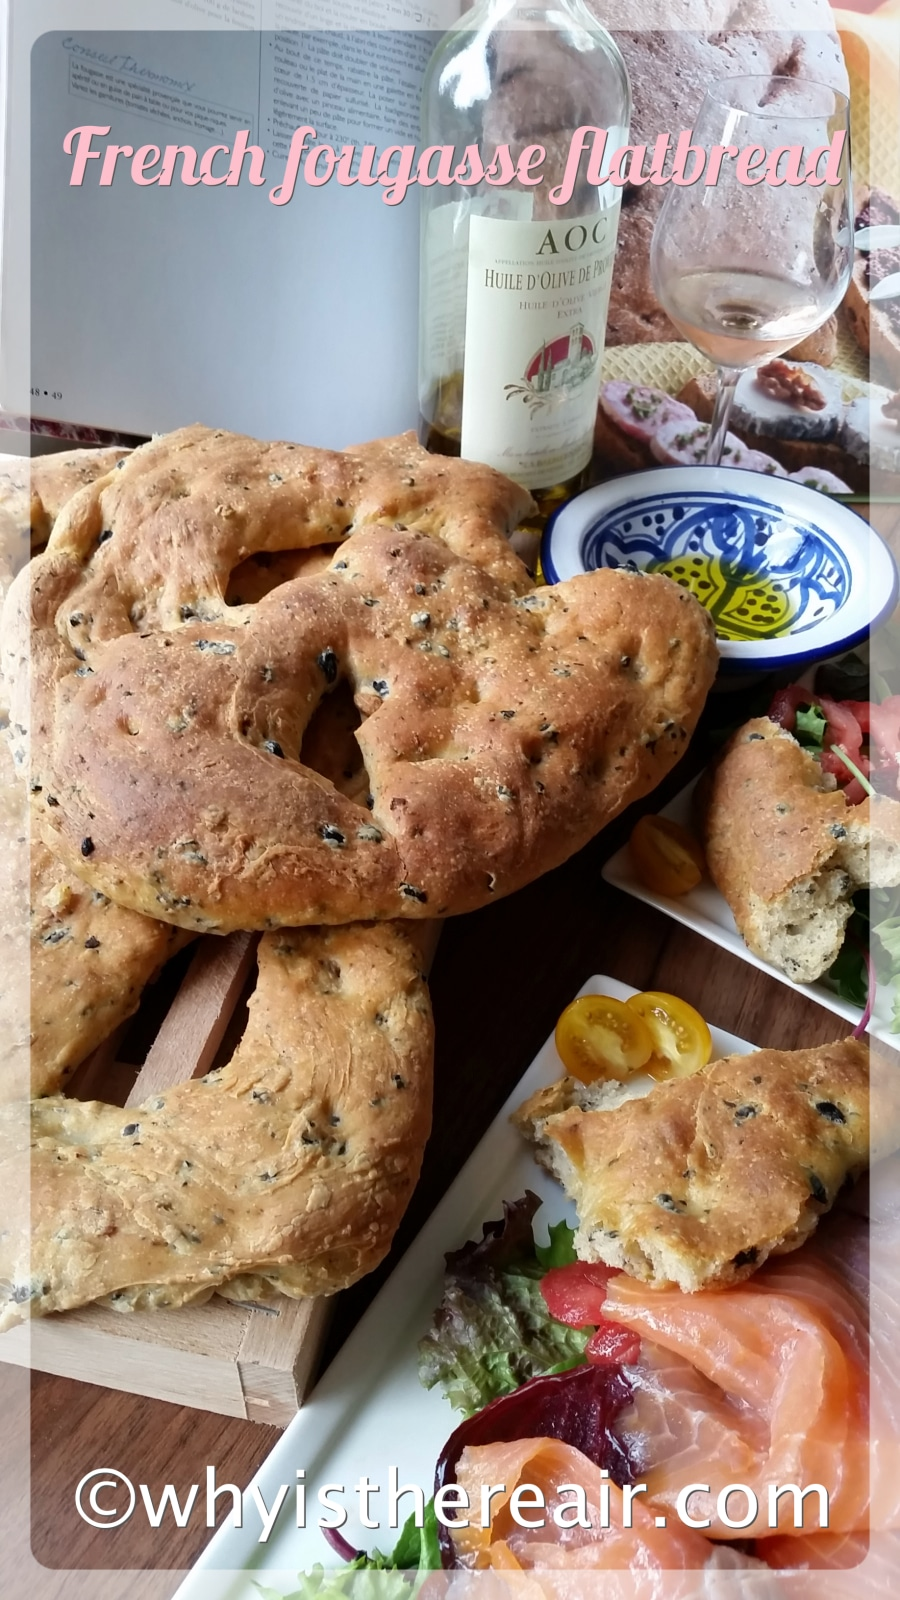 Savoury fougasse flatbread is perfect for your picnics, with wines or with dinner